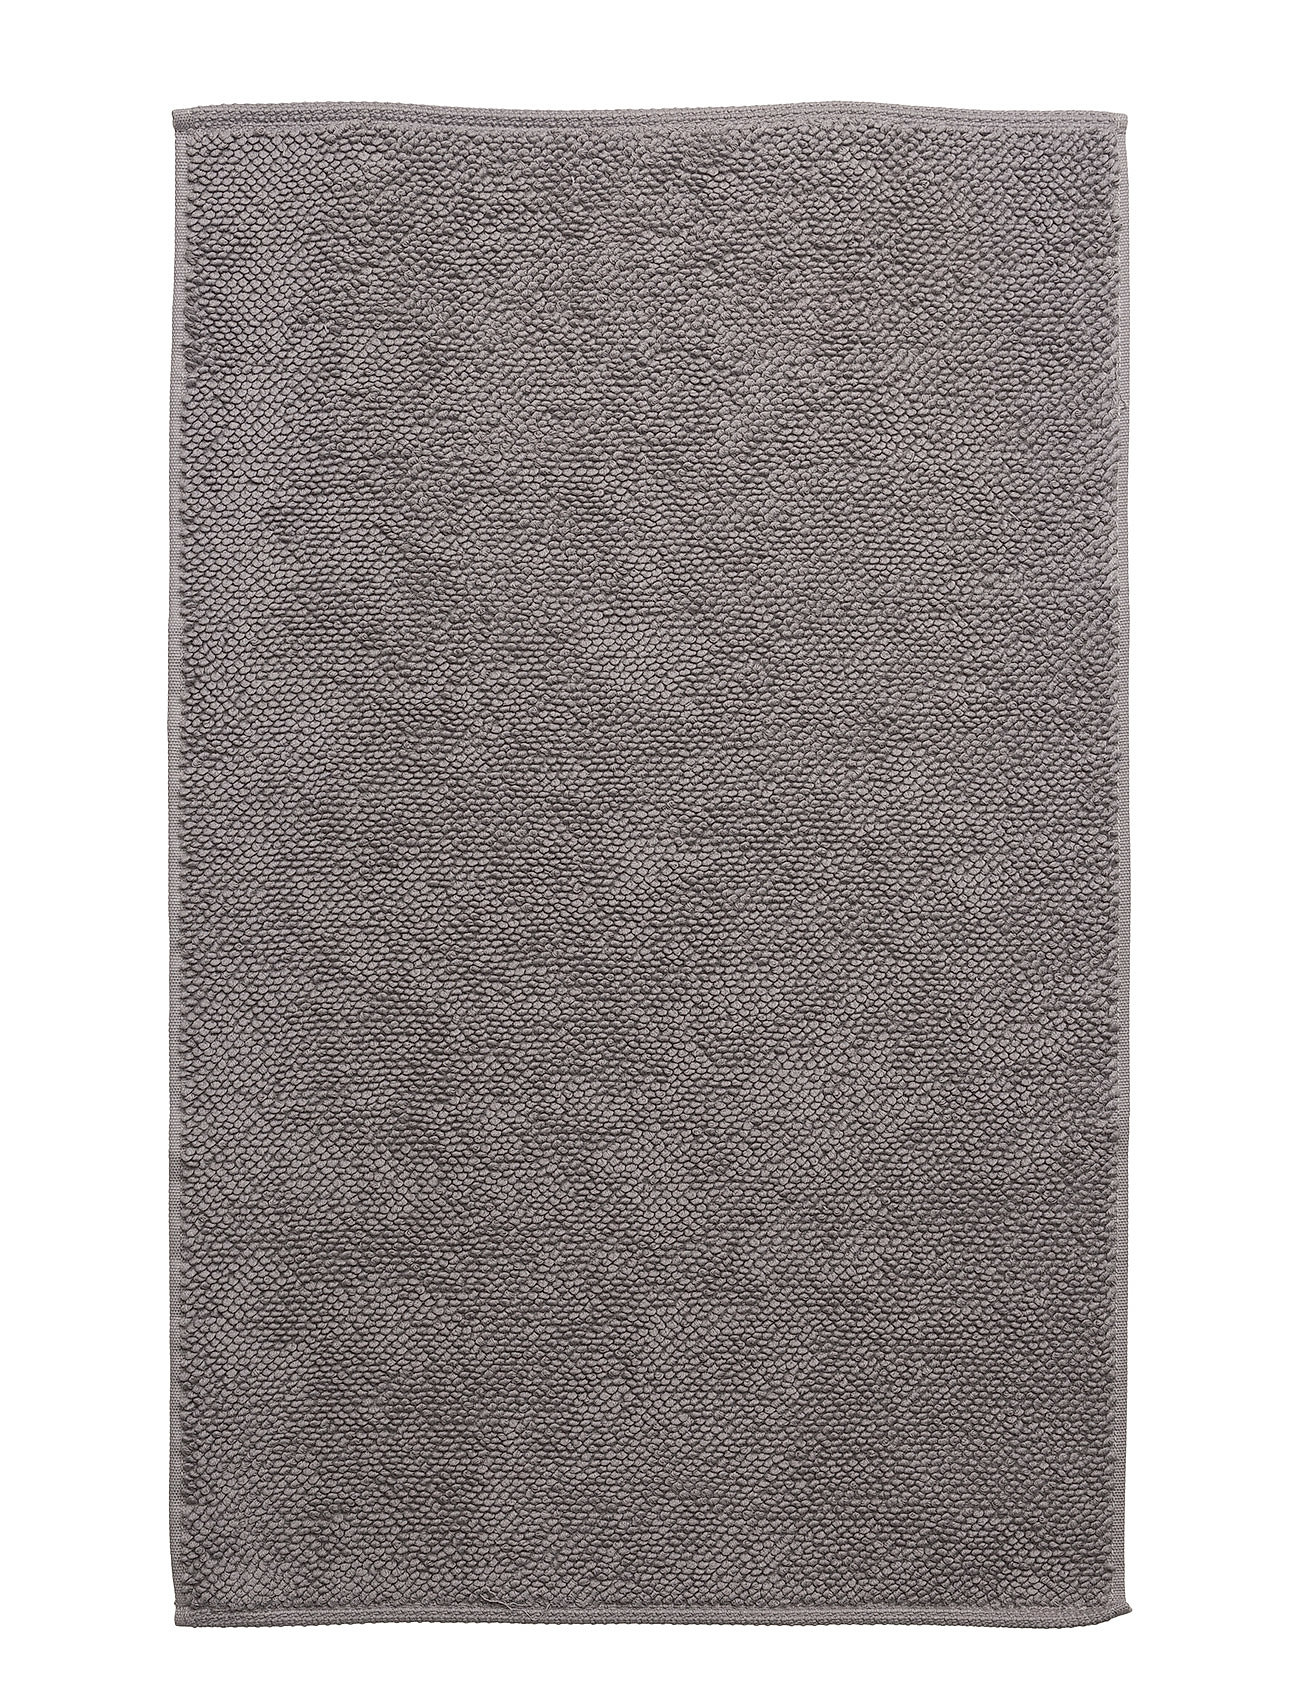 Gripsholm BATH MAT TERRY SIGRID - GREY